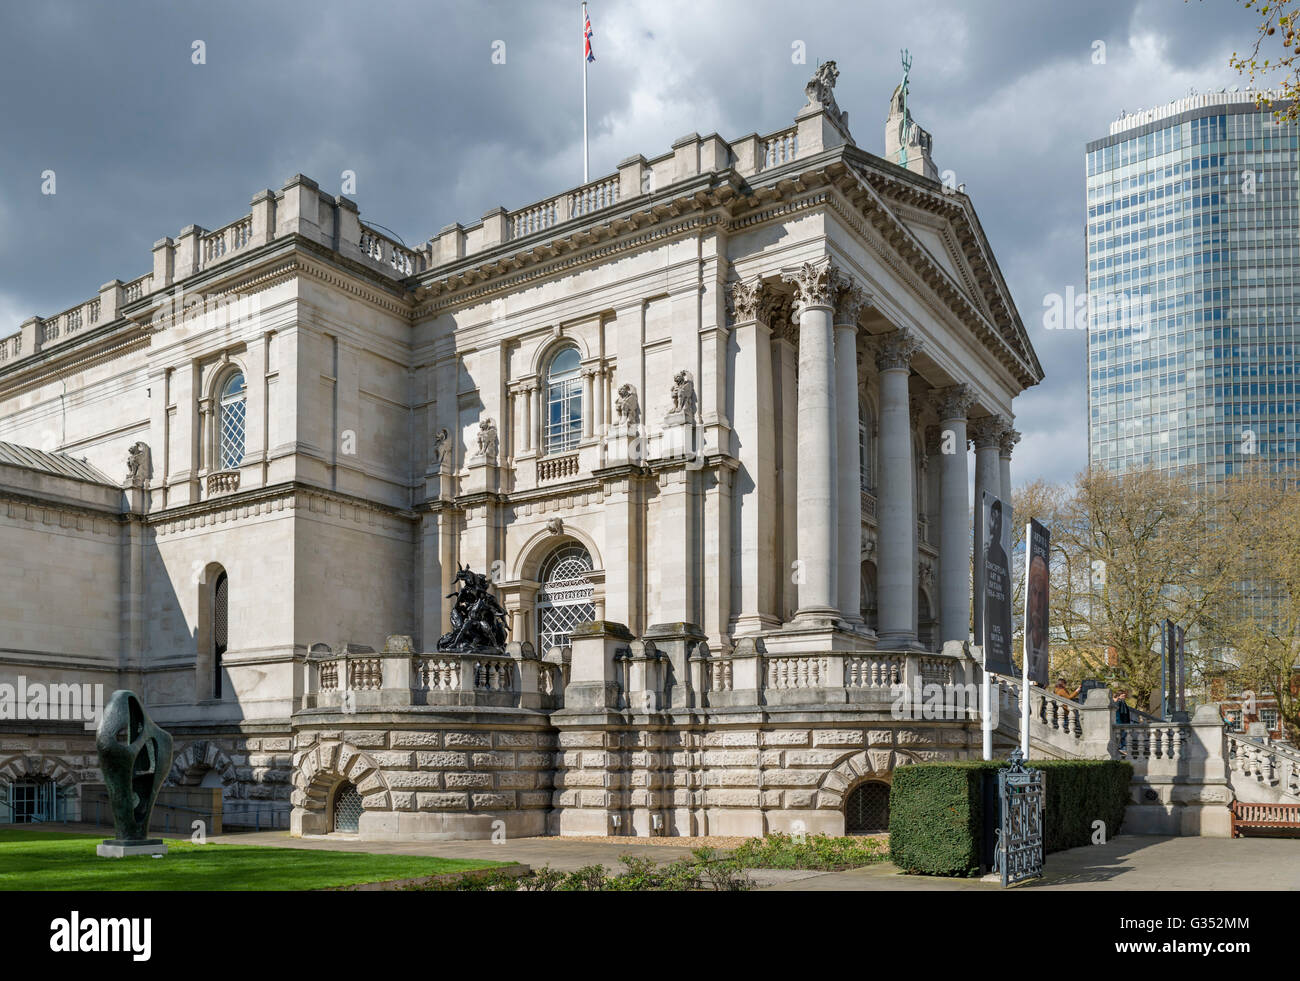 Entrance to Tate Britain art gallery, Millbank, London ...